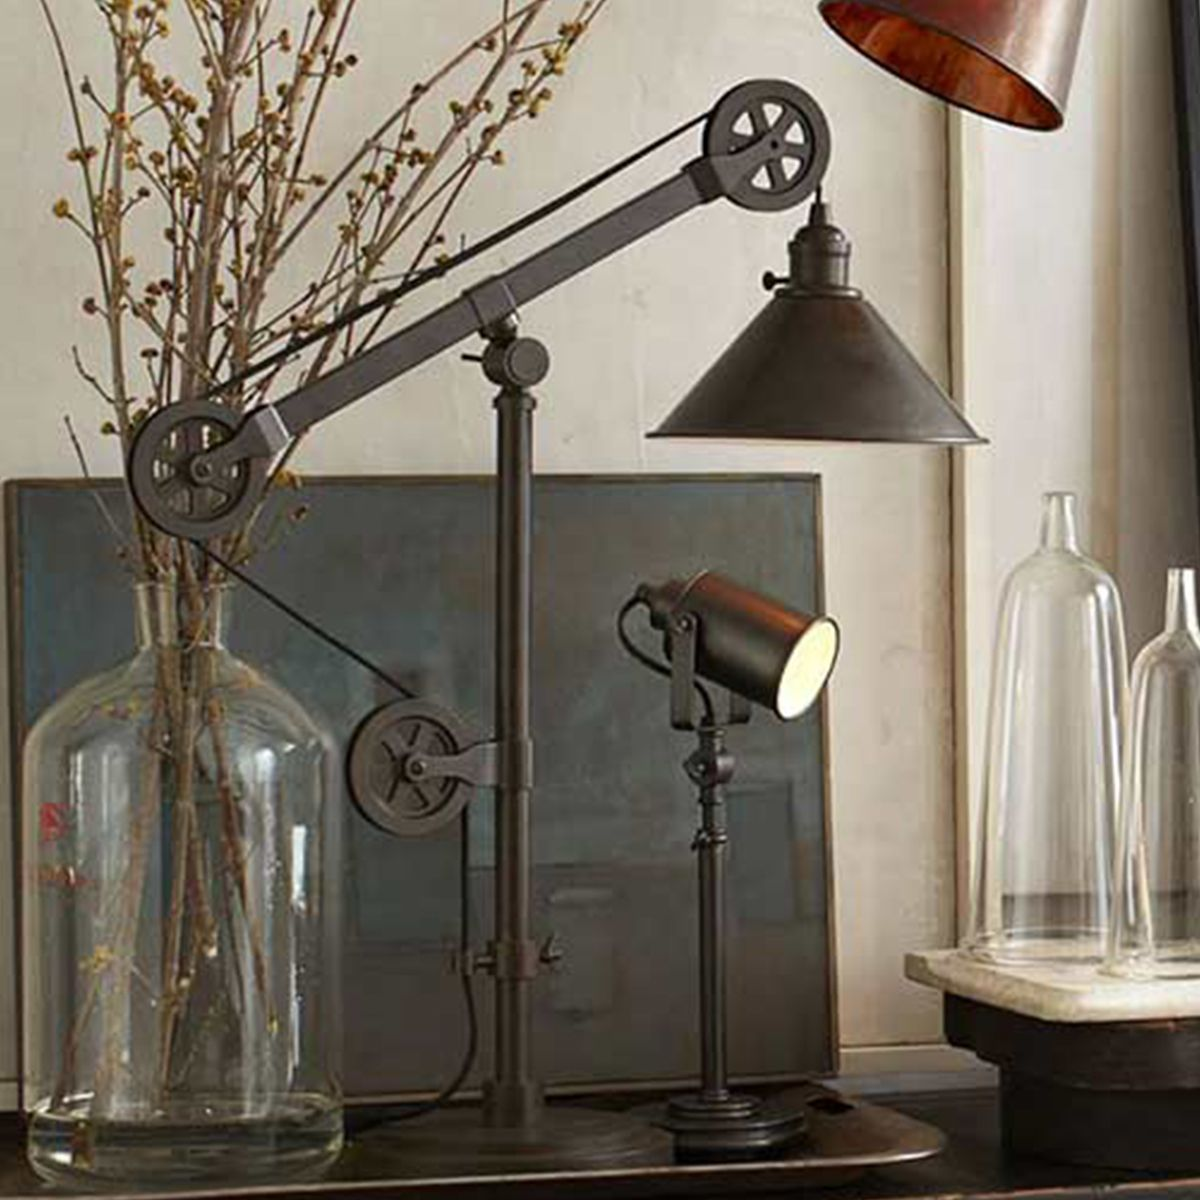 Farmhouse Brilliance Rustic Lighting You'll Love Pulley